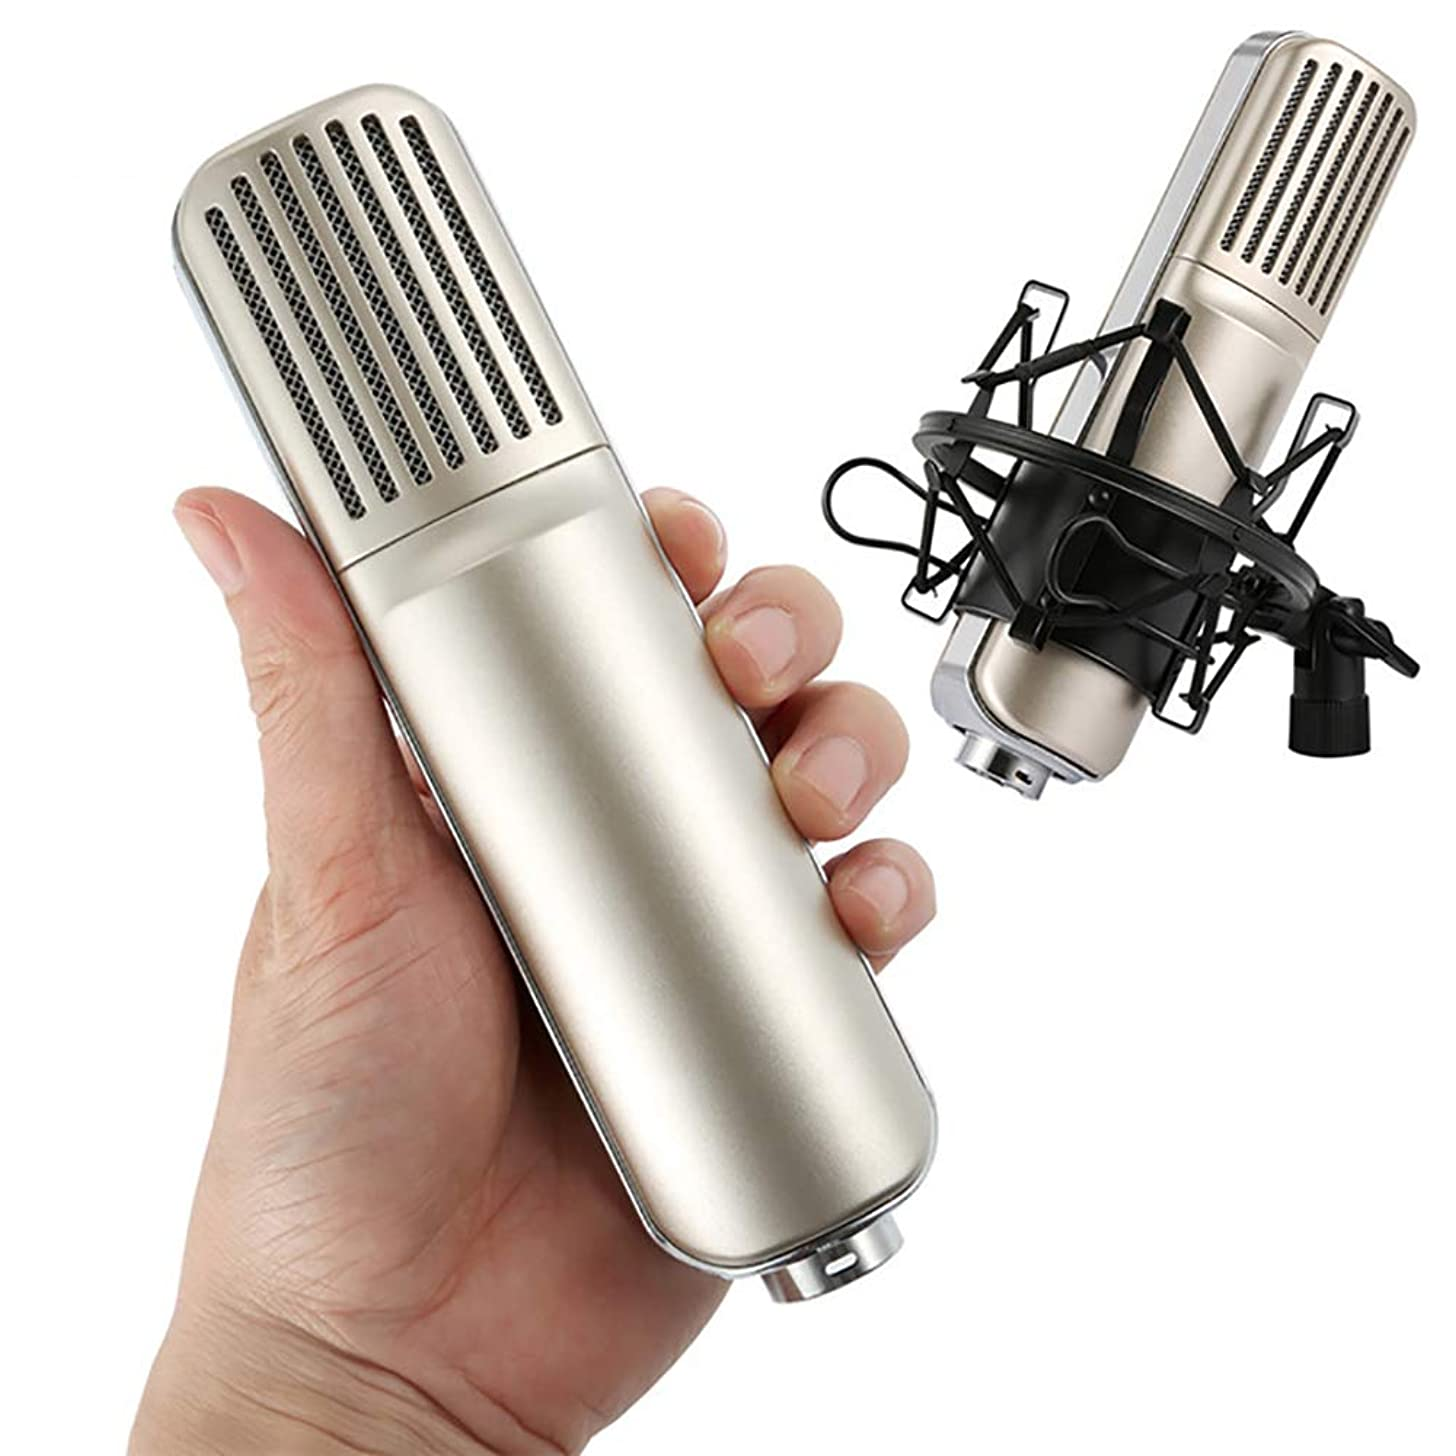 ZYG.GG Condenser Microphone Broadcasting Recording Microphone Karaoke Shock Mount XLR Cable 3.5mm Jack,Cardioid Polar Pattern for Music and Video Recording, Podcast, Gaming or Chat